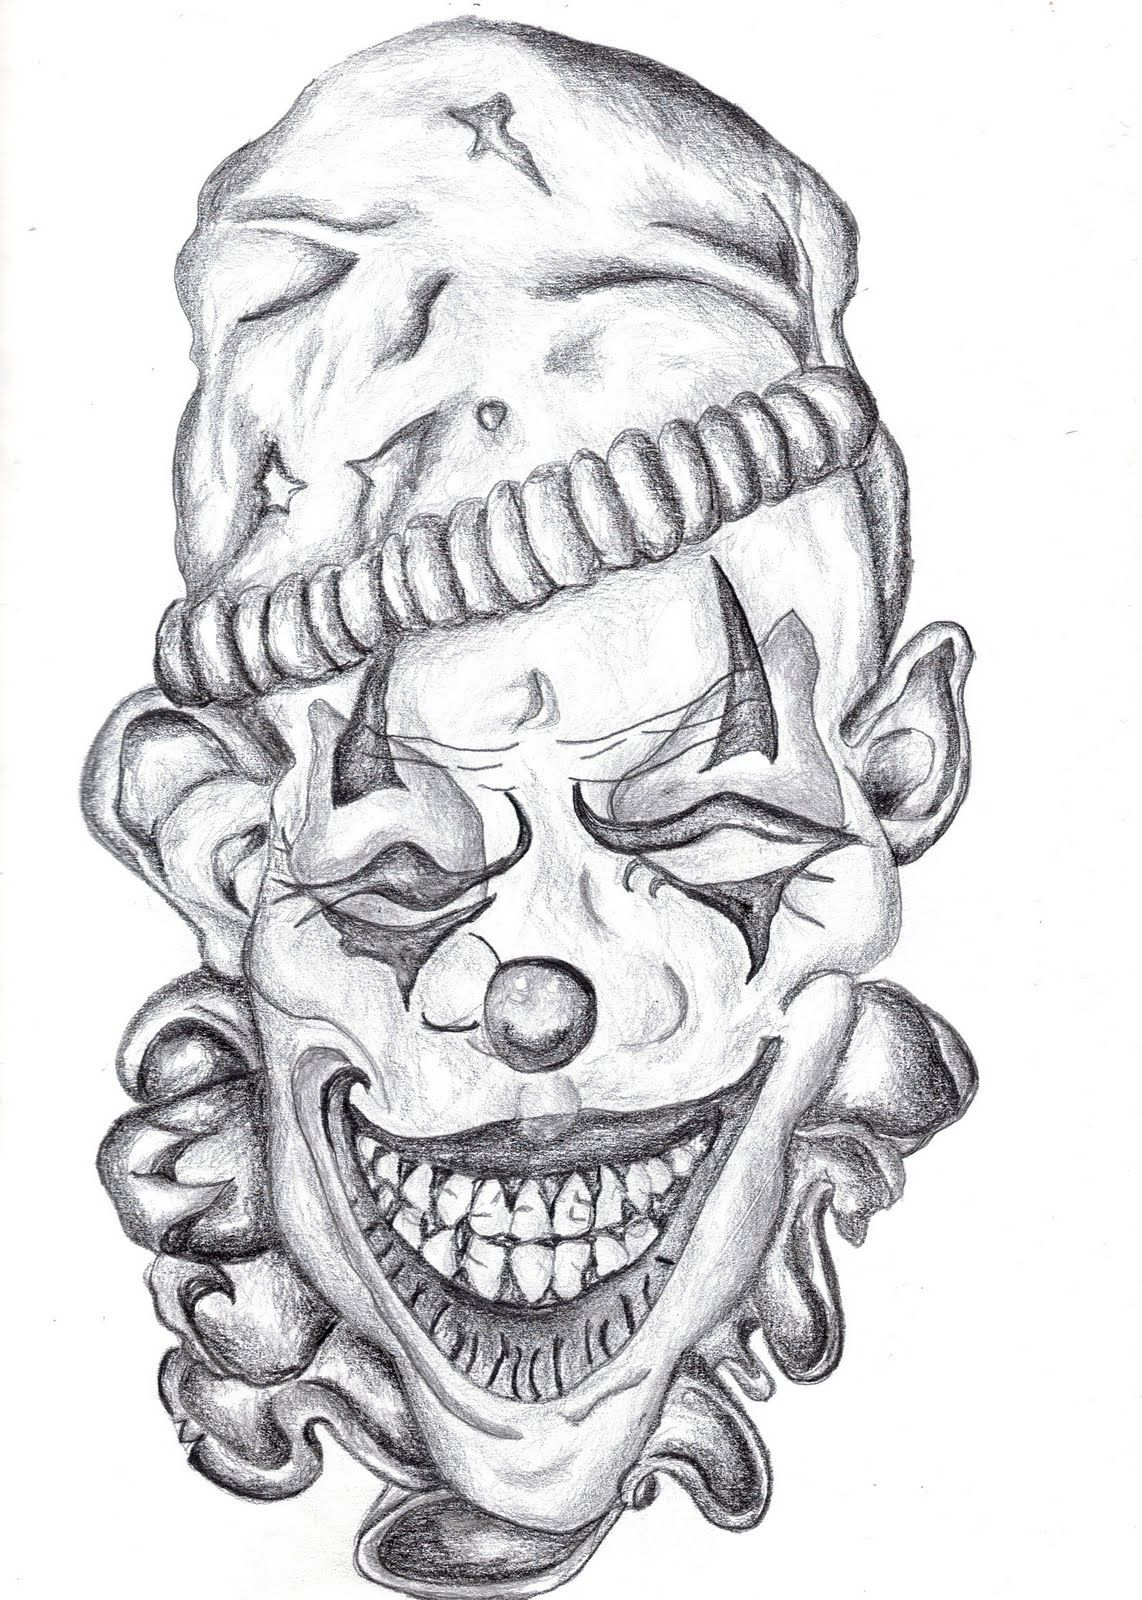 jester evil joker drawings art a holic chelsea paintings drawings 2006 2009 tattoo. Black Bedroom Furniture Sets. Home Design Ideas